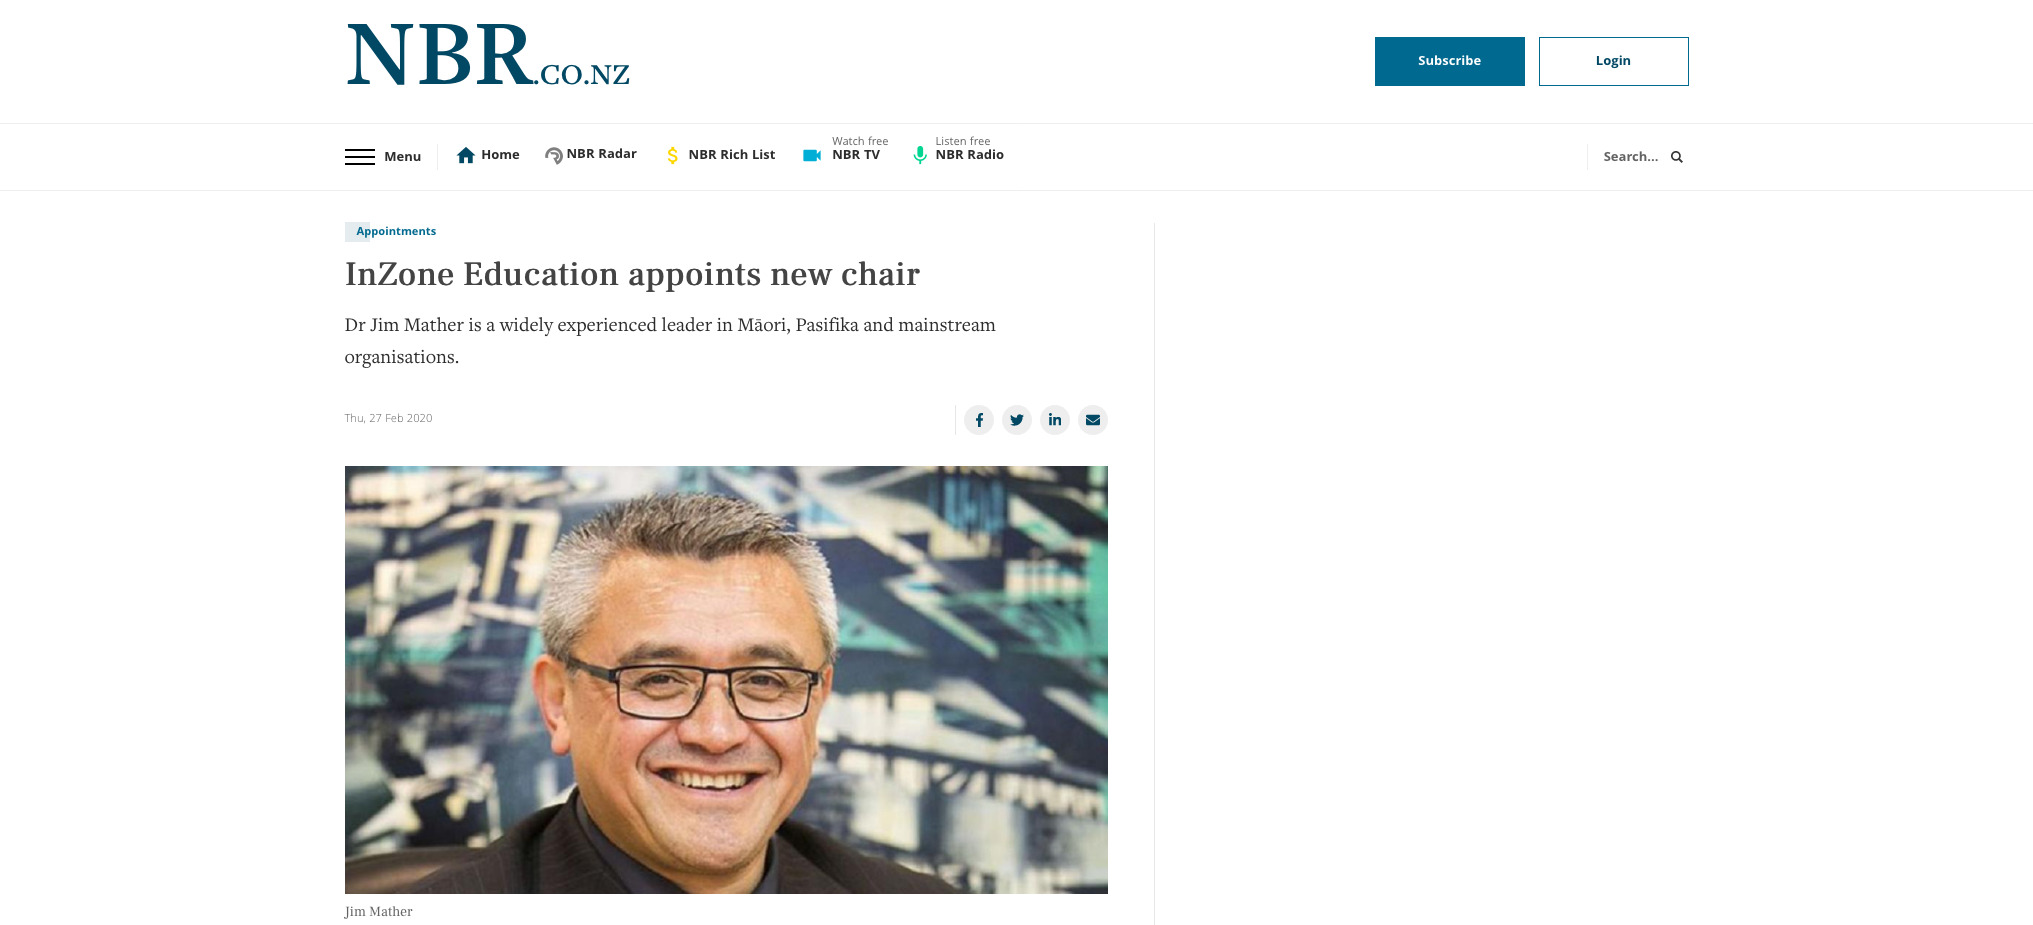 InZone Education appoints new chair